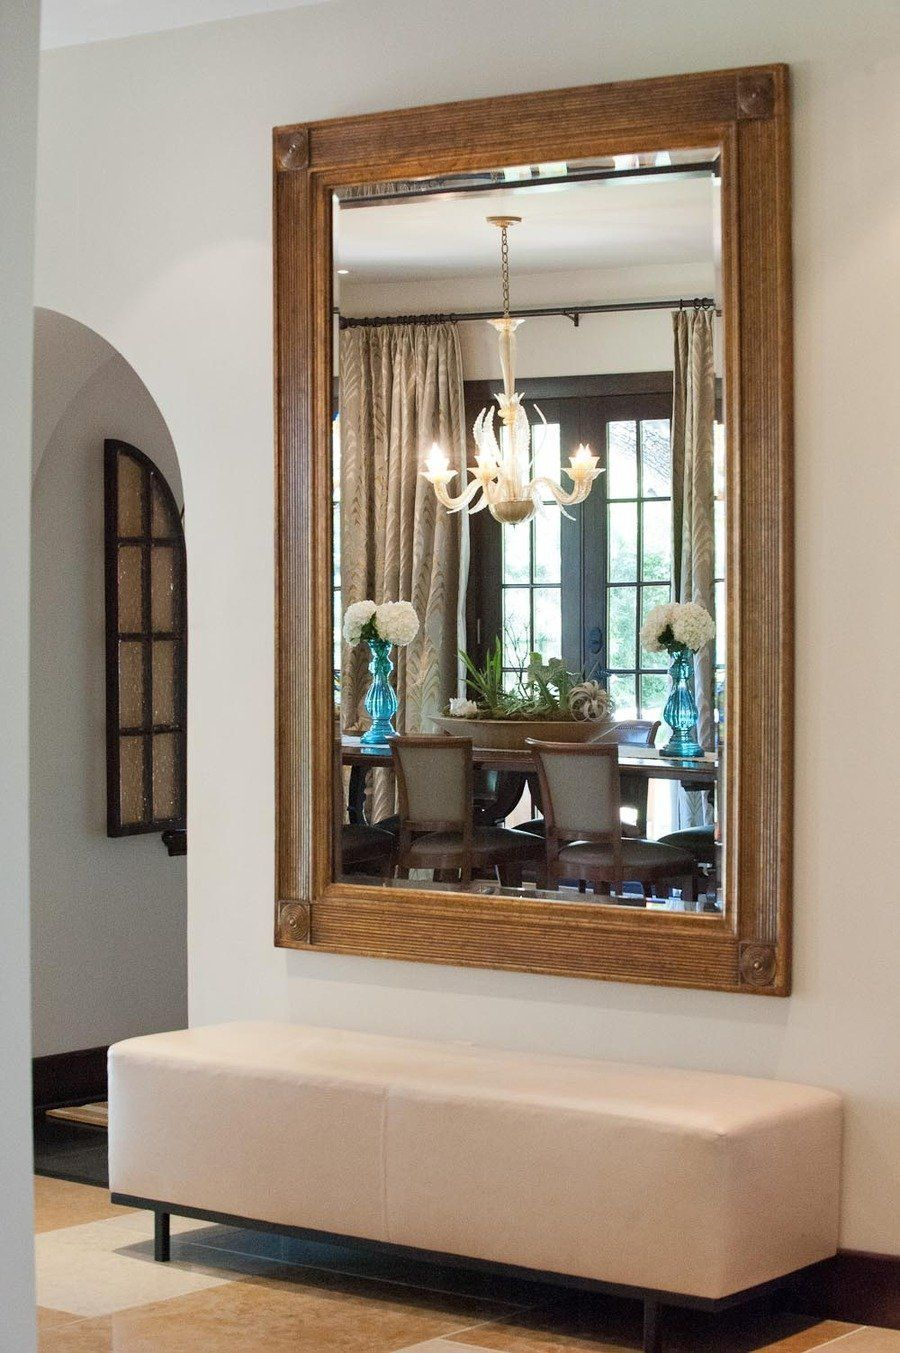 Foyer Mirrors : At home with kendra scott bench foyers and giant mirror